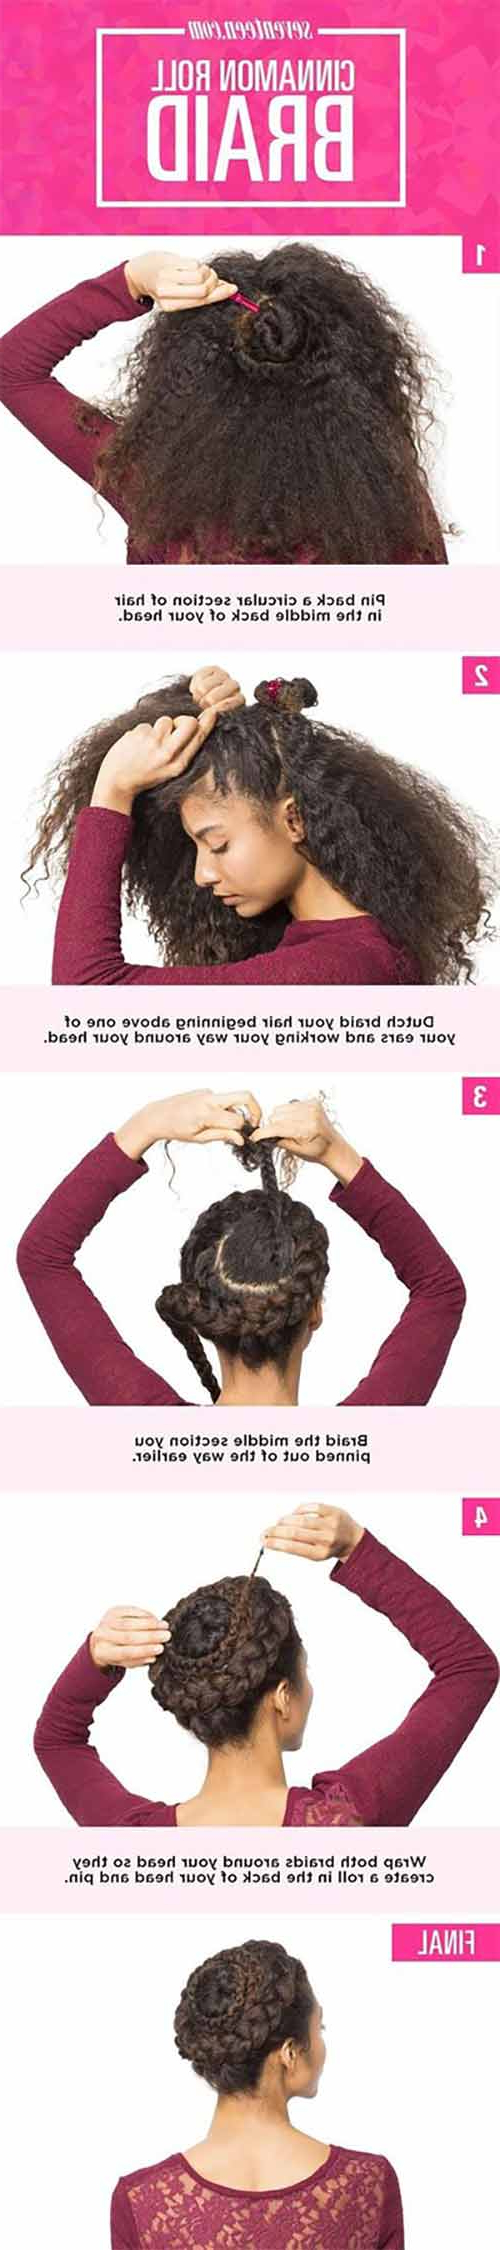 20 Incredibly Stunning Diy Updos For Curly Hair With Regard To Well Known Cinnamon Bun Braided Hairstyles (View 2 of 20)